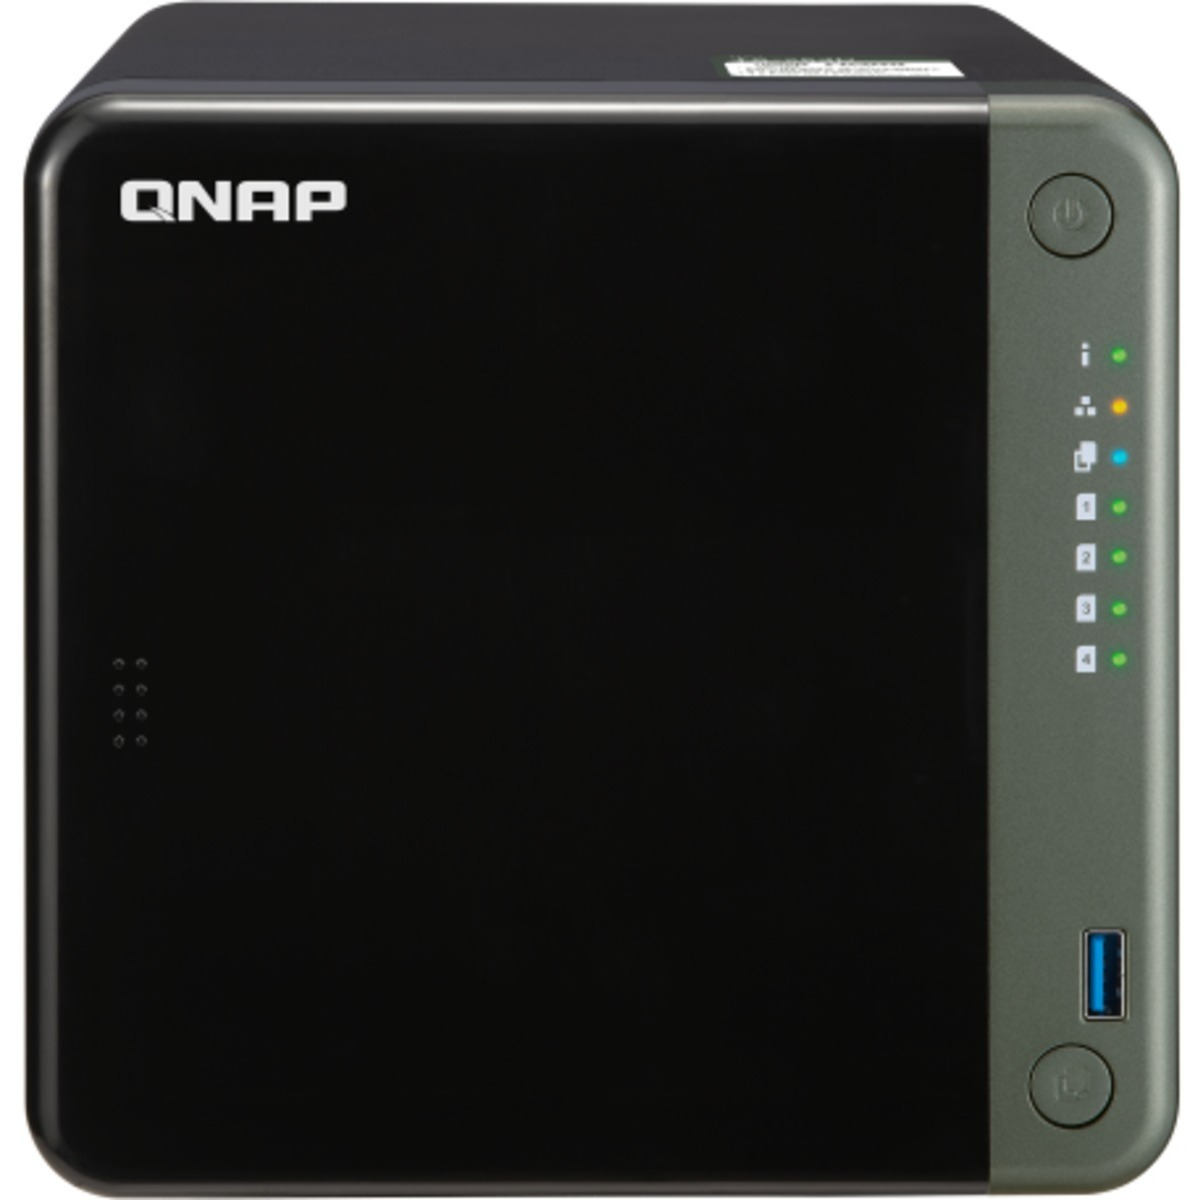 buy $2402 QNAP TS-453D 56tb Desktop NAS - Network Attached Storage Device 4x14000gb Western Digital Red Plus WD140EFFX 3.5 7200rpm SATA 6Gb/s HDD NAS Class Drives Installed - Burn-In Tested - ON SALE - FREE RAM UPGRADE - nas headquarters buy network attached storage server device das new raid-5 free shipping usa holiday new year clearance sale TS-453D